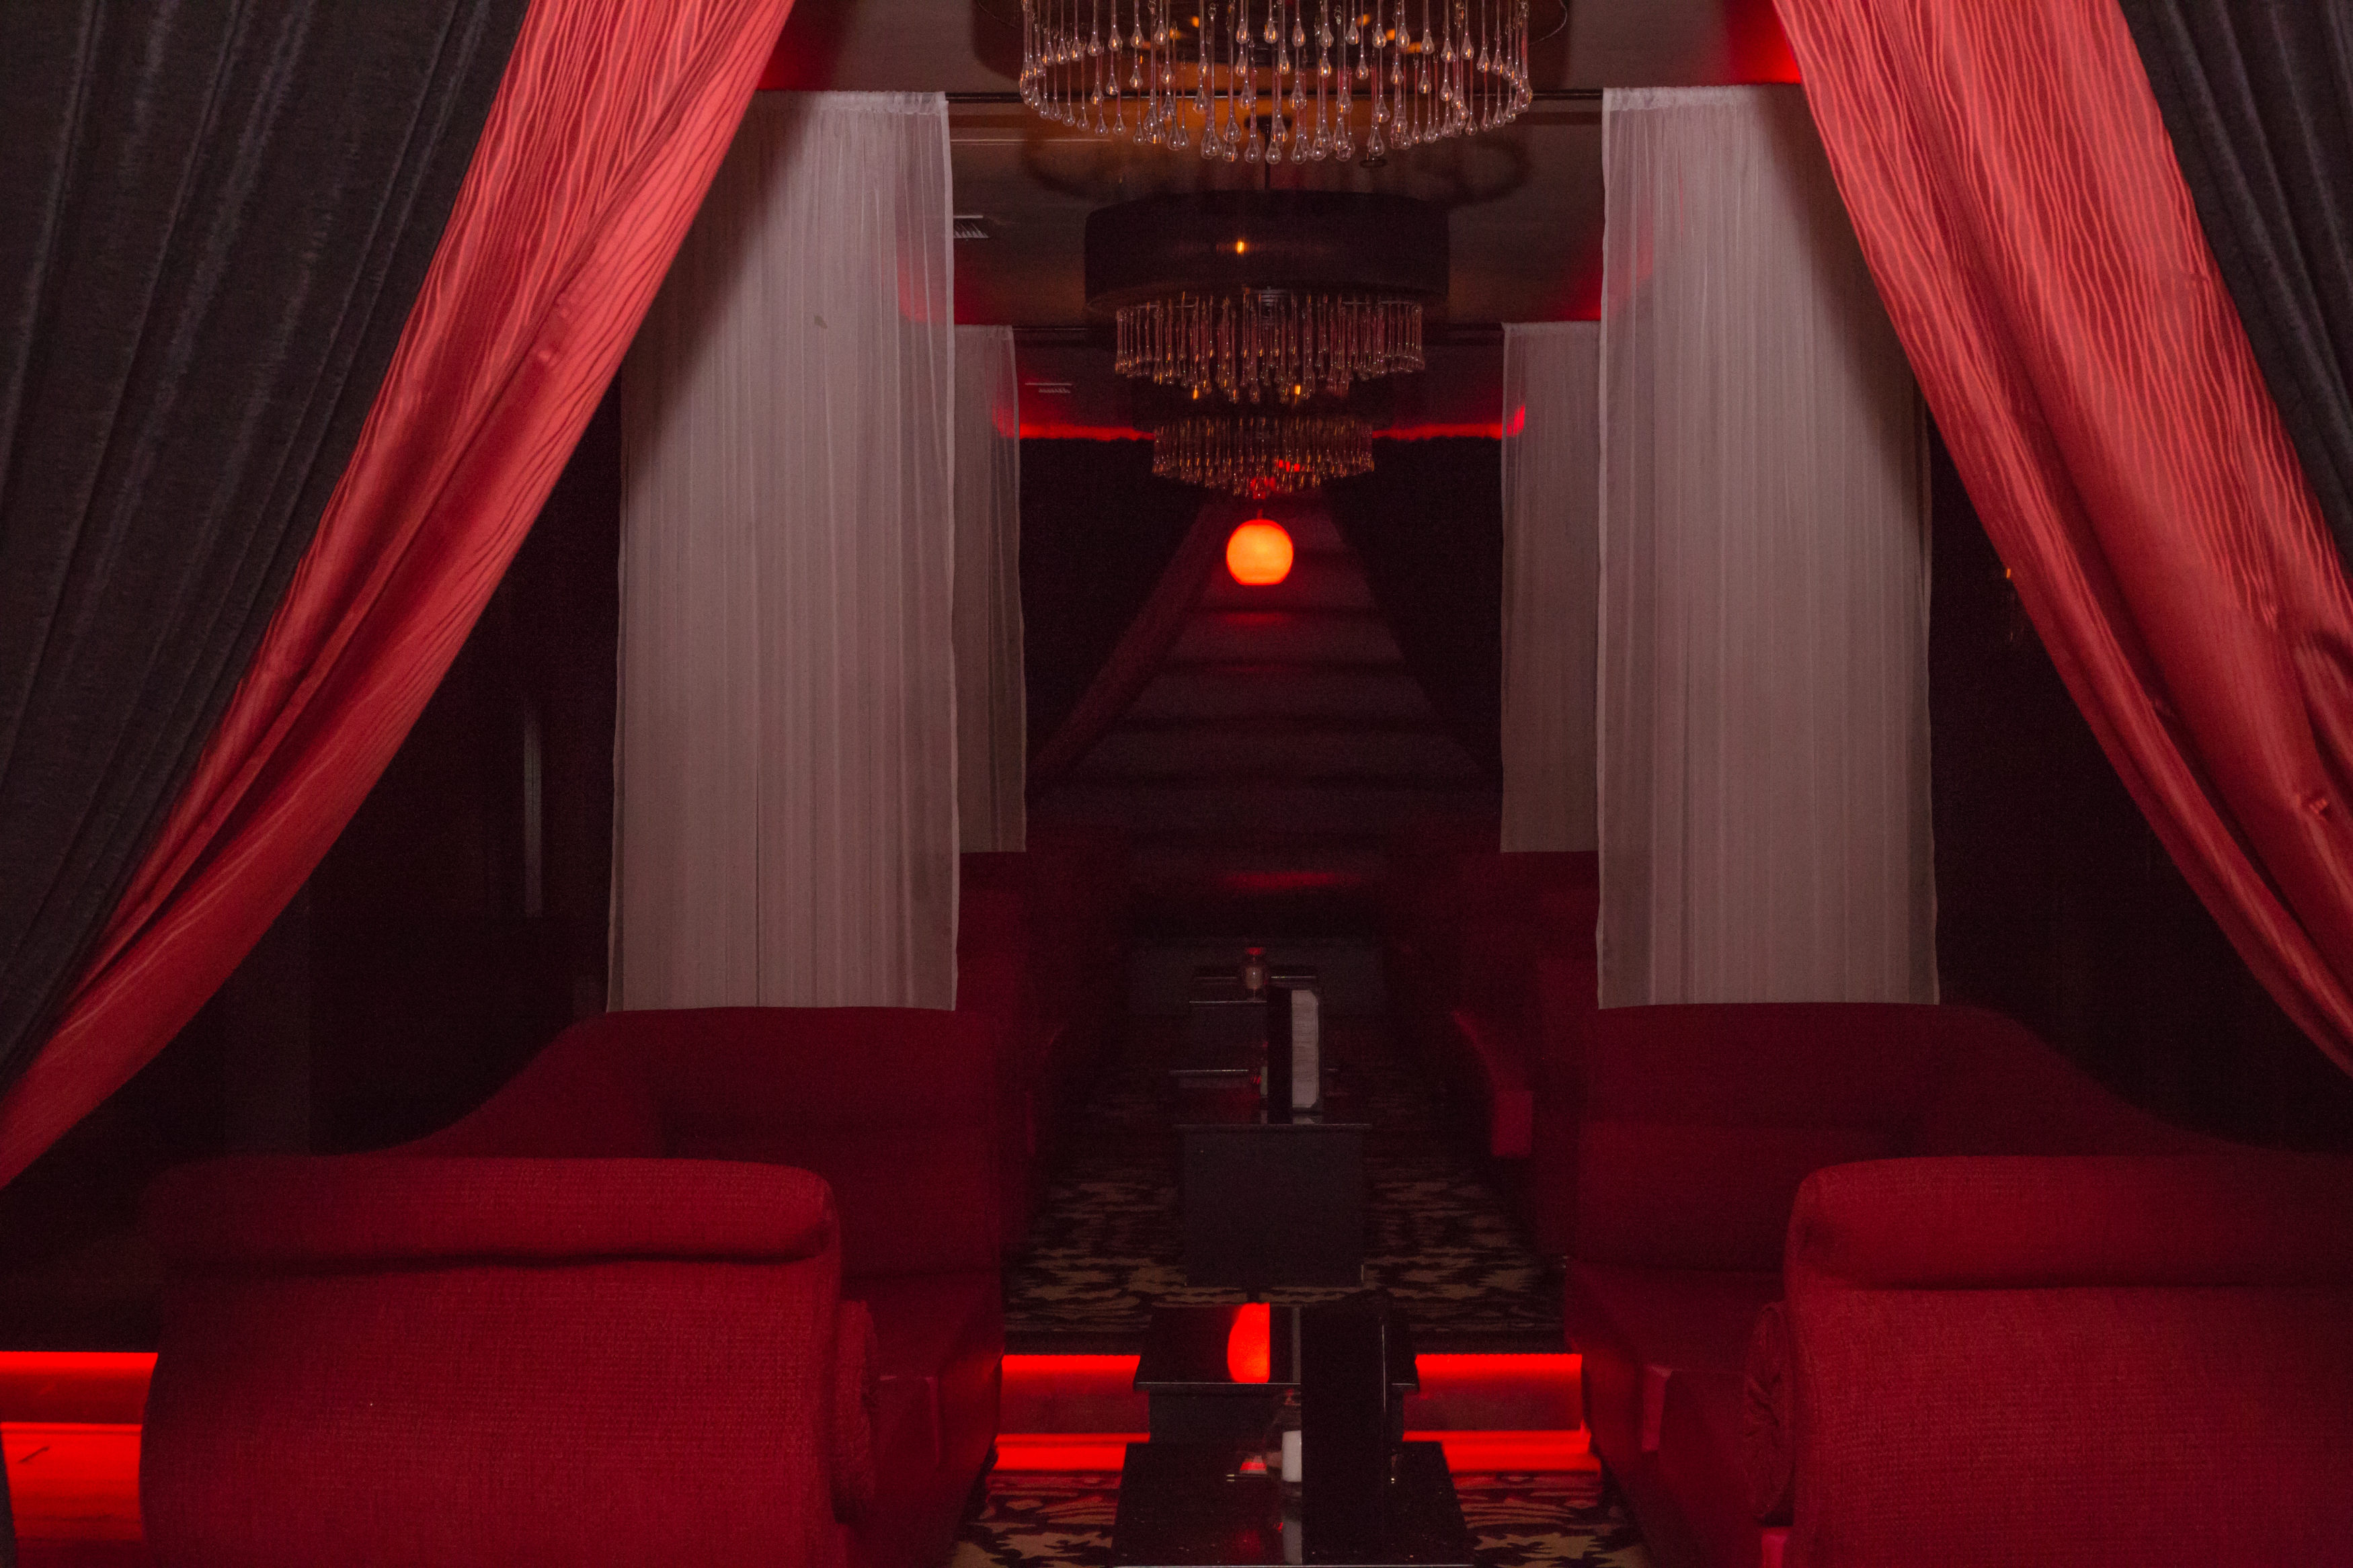 The Vip Lounge At Trapeze A Swingers Club In Atlanta Ga Photo By Dayne Francis The Signal